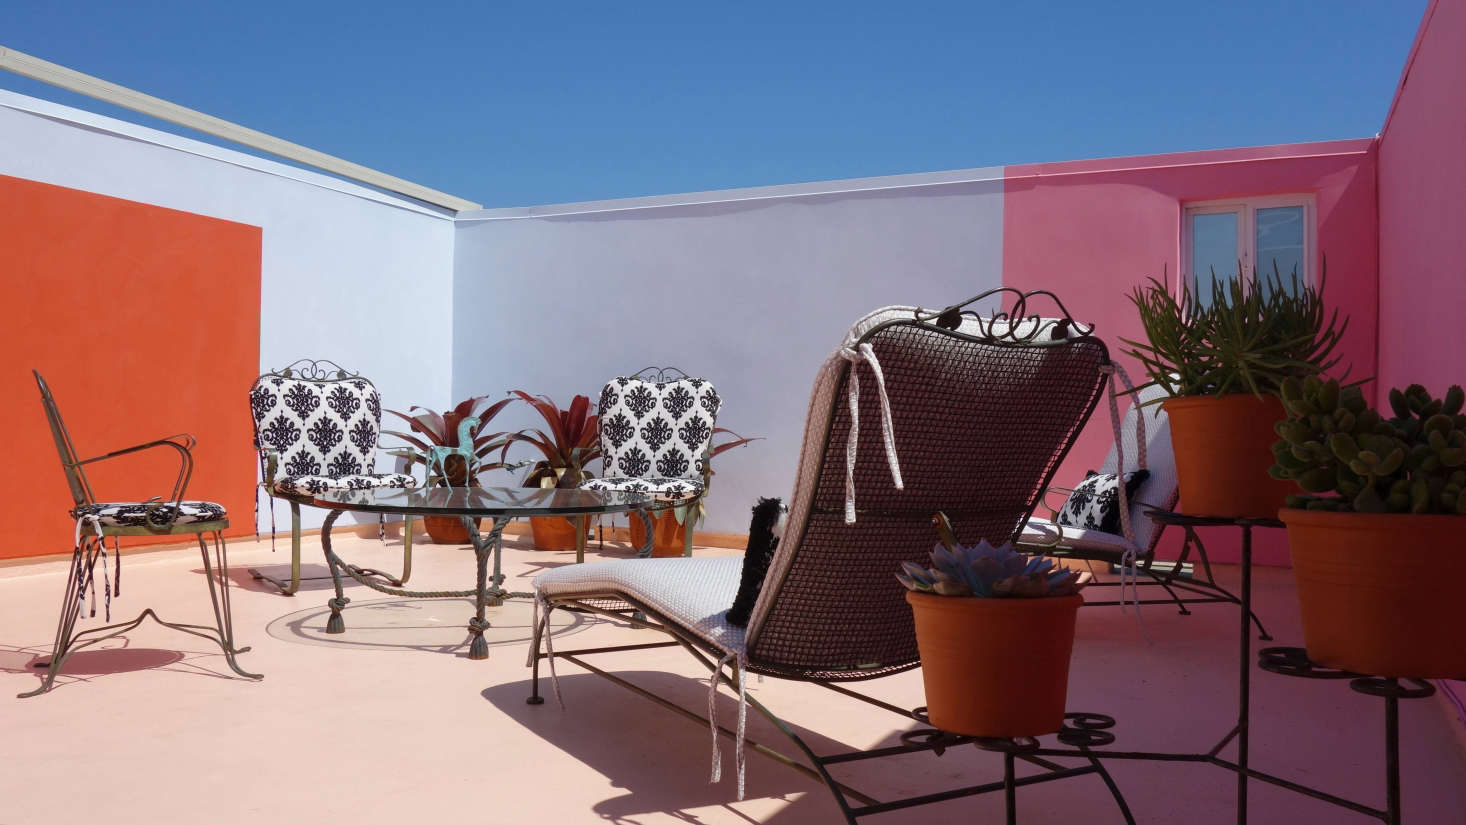 Terrace, Marina Del Rey: The lime wash wall colors were inspired by Luis Barragan. We endeavored to softenthe sense of enclosure by breaking up the wall surfaces. Photo: Laura Clayton Baker